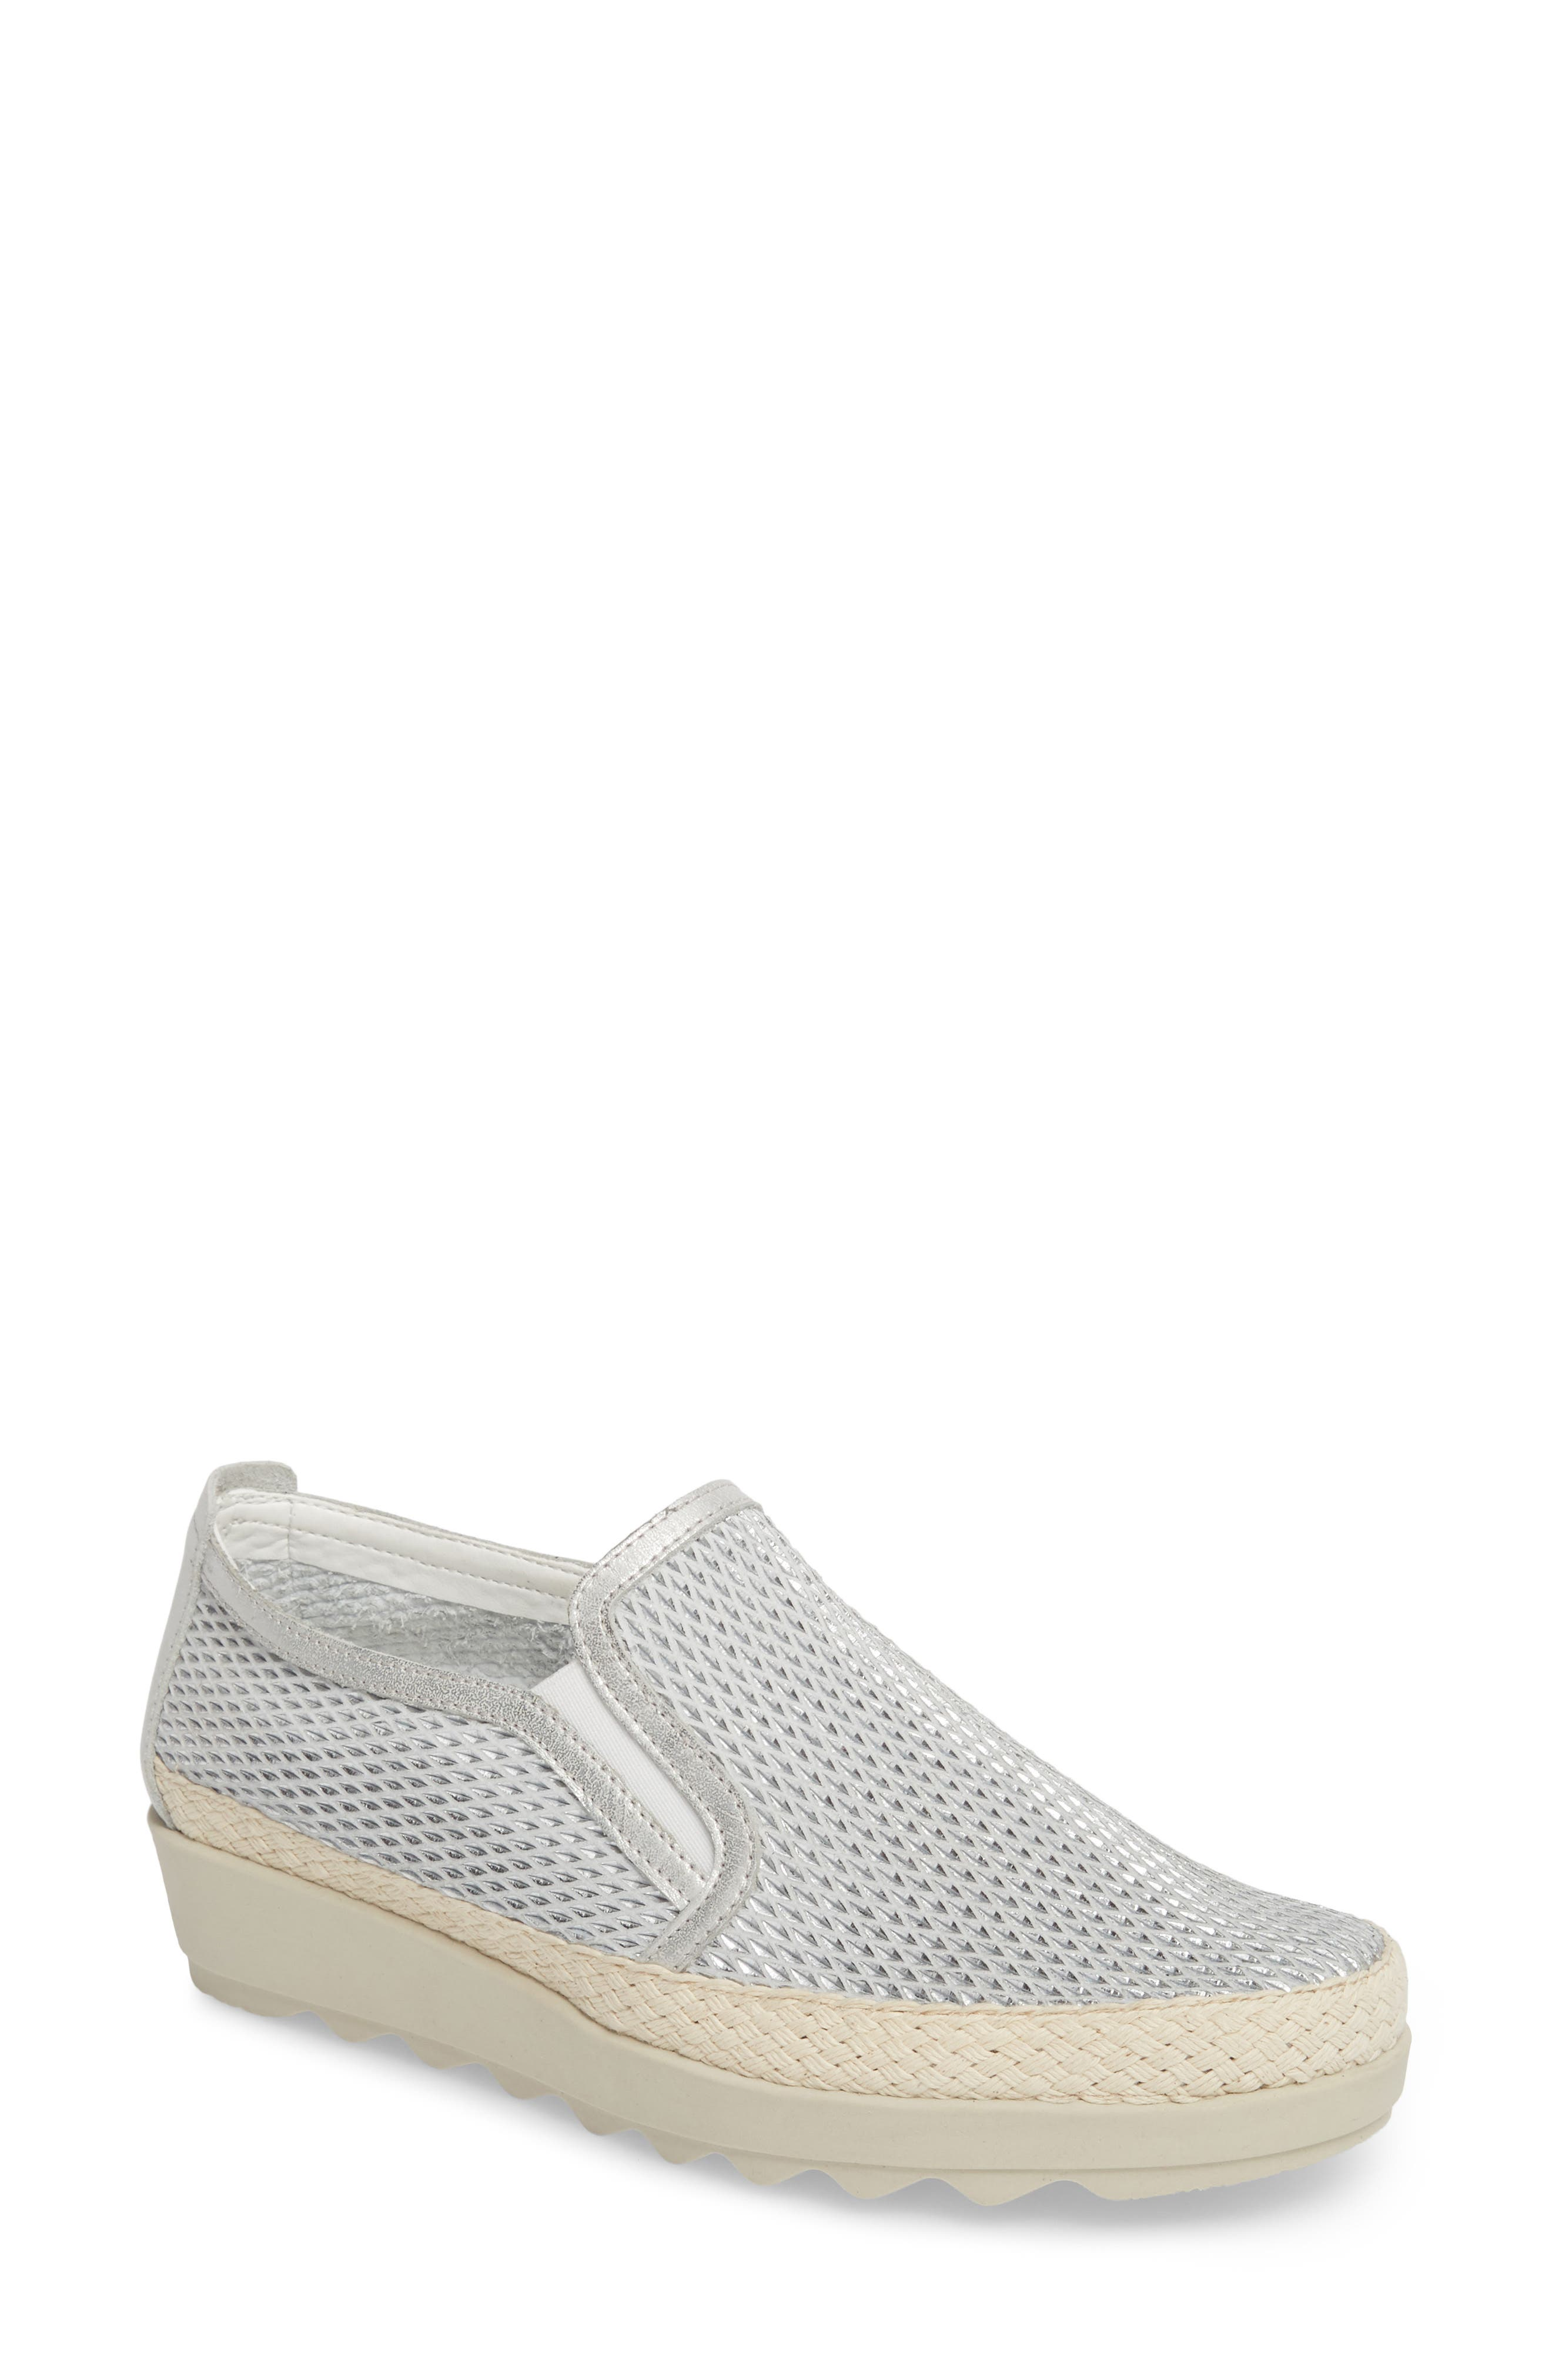 THE FLEXX,                             Call Me Perforated Slip-On Sneaker,                             Main thumbnail 1, color,                             WHITE/ SILVER LEATHER